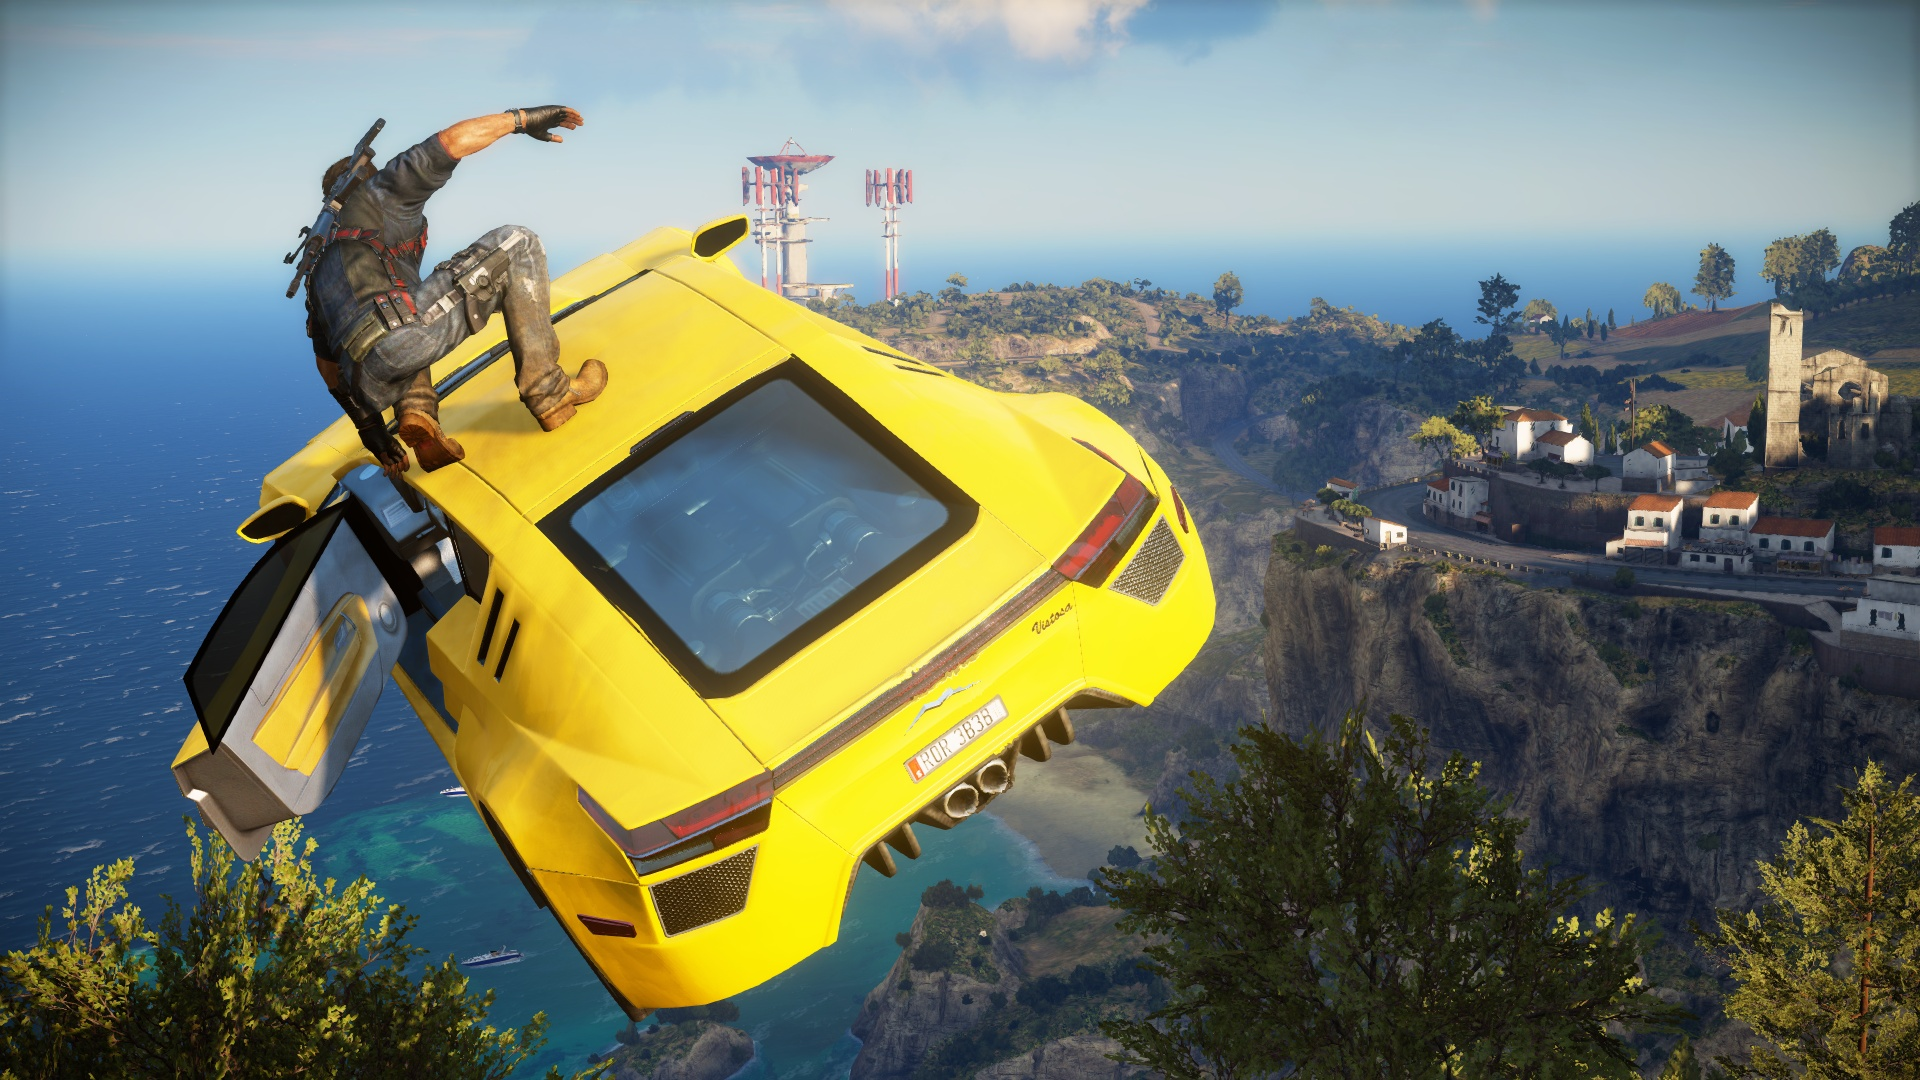 Just Cause 3 runs better on PS4 than Xbox One